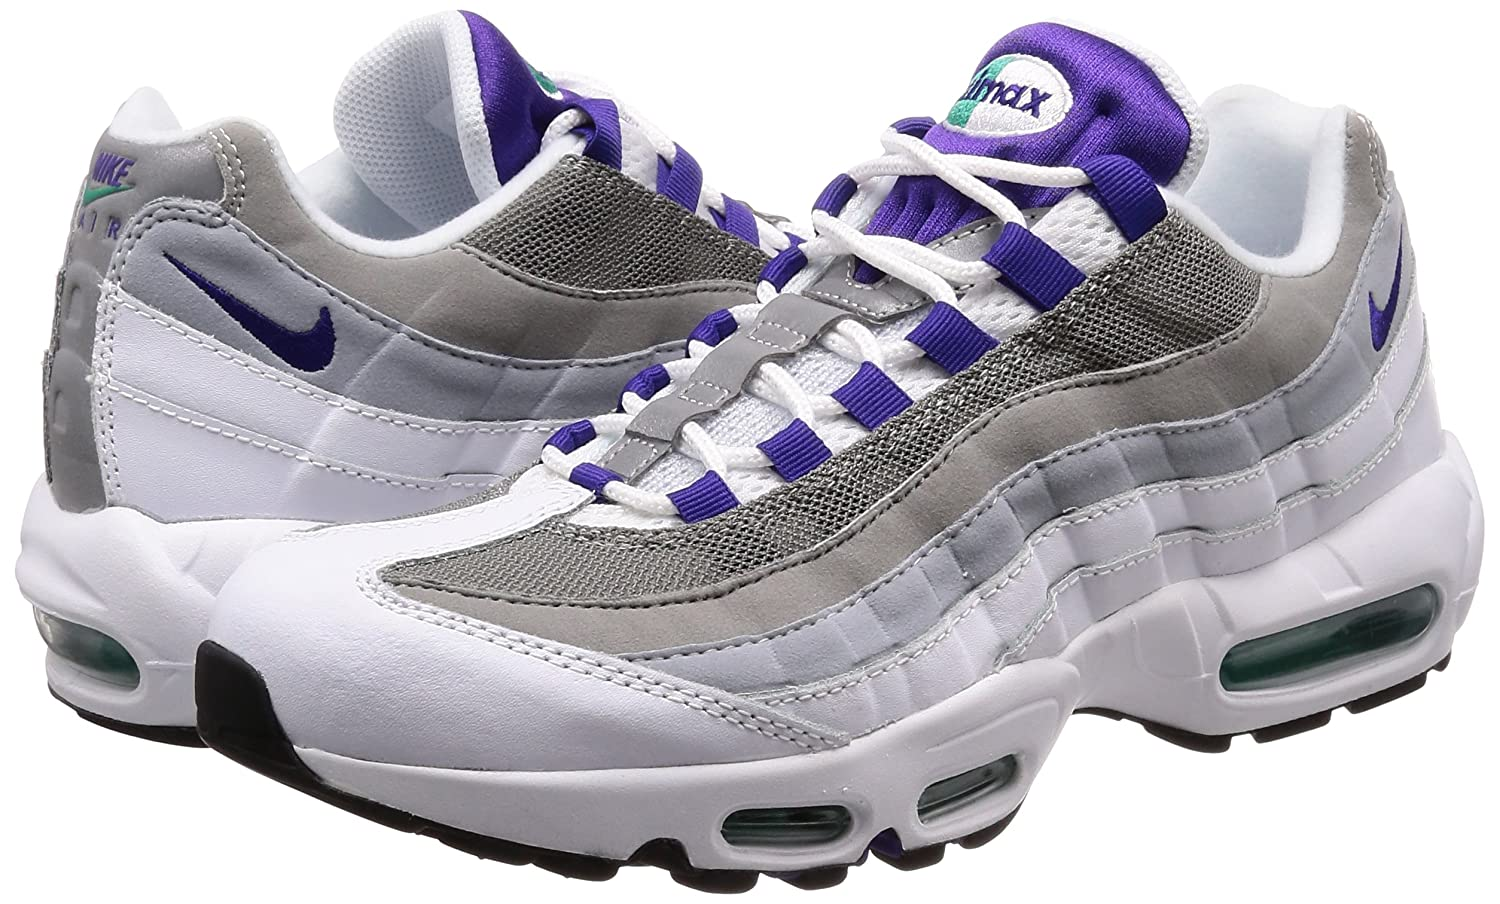 official photos 0f7f4 2b081 Amazon.com   Nike Women s WMNS Air Max 95 Trainers, Multicolour (White Emerald  Green Wolf Grey Court Purple 109), 4.5 UK 38 EU   Road Running